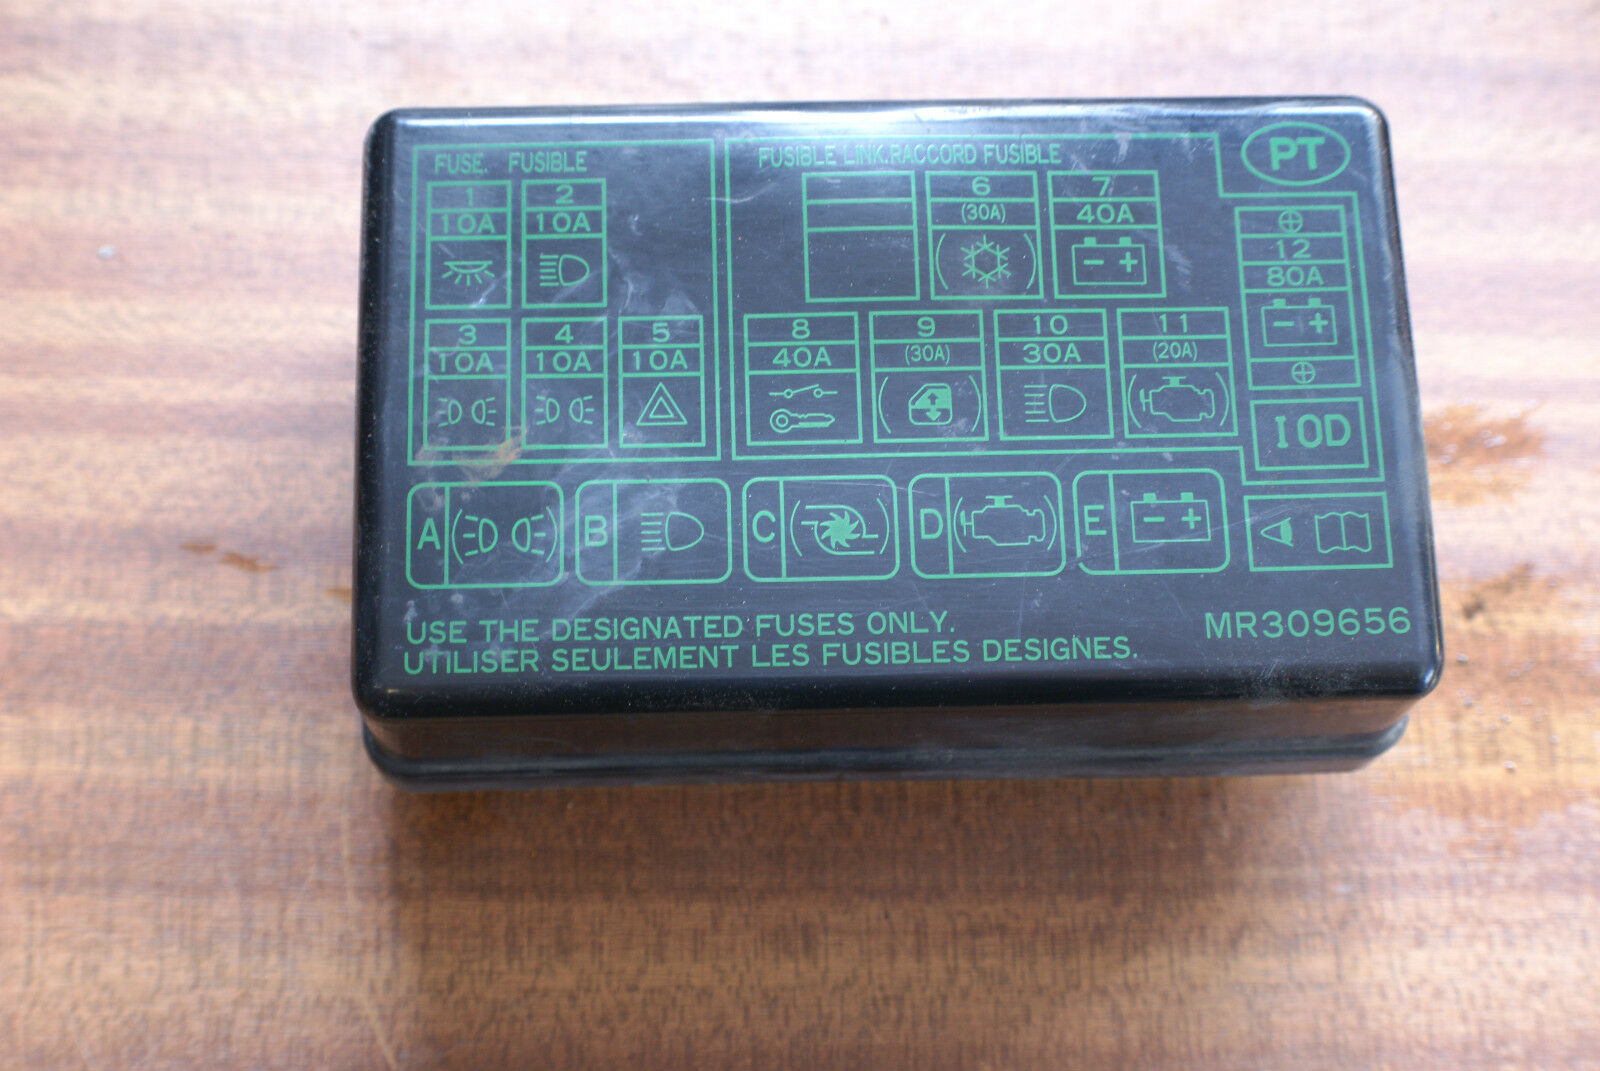 Mitsubishi L200 K74 98- 06 FUSE BOX COVER 1 of 1FREE Shipping ...